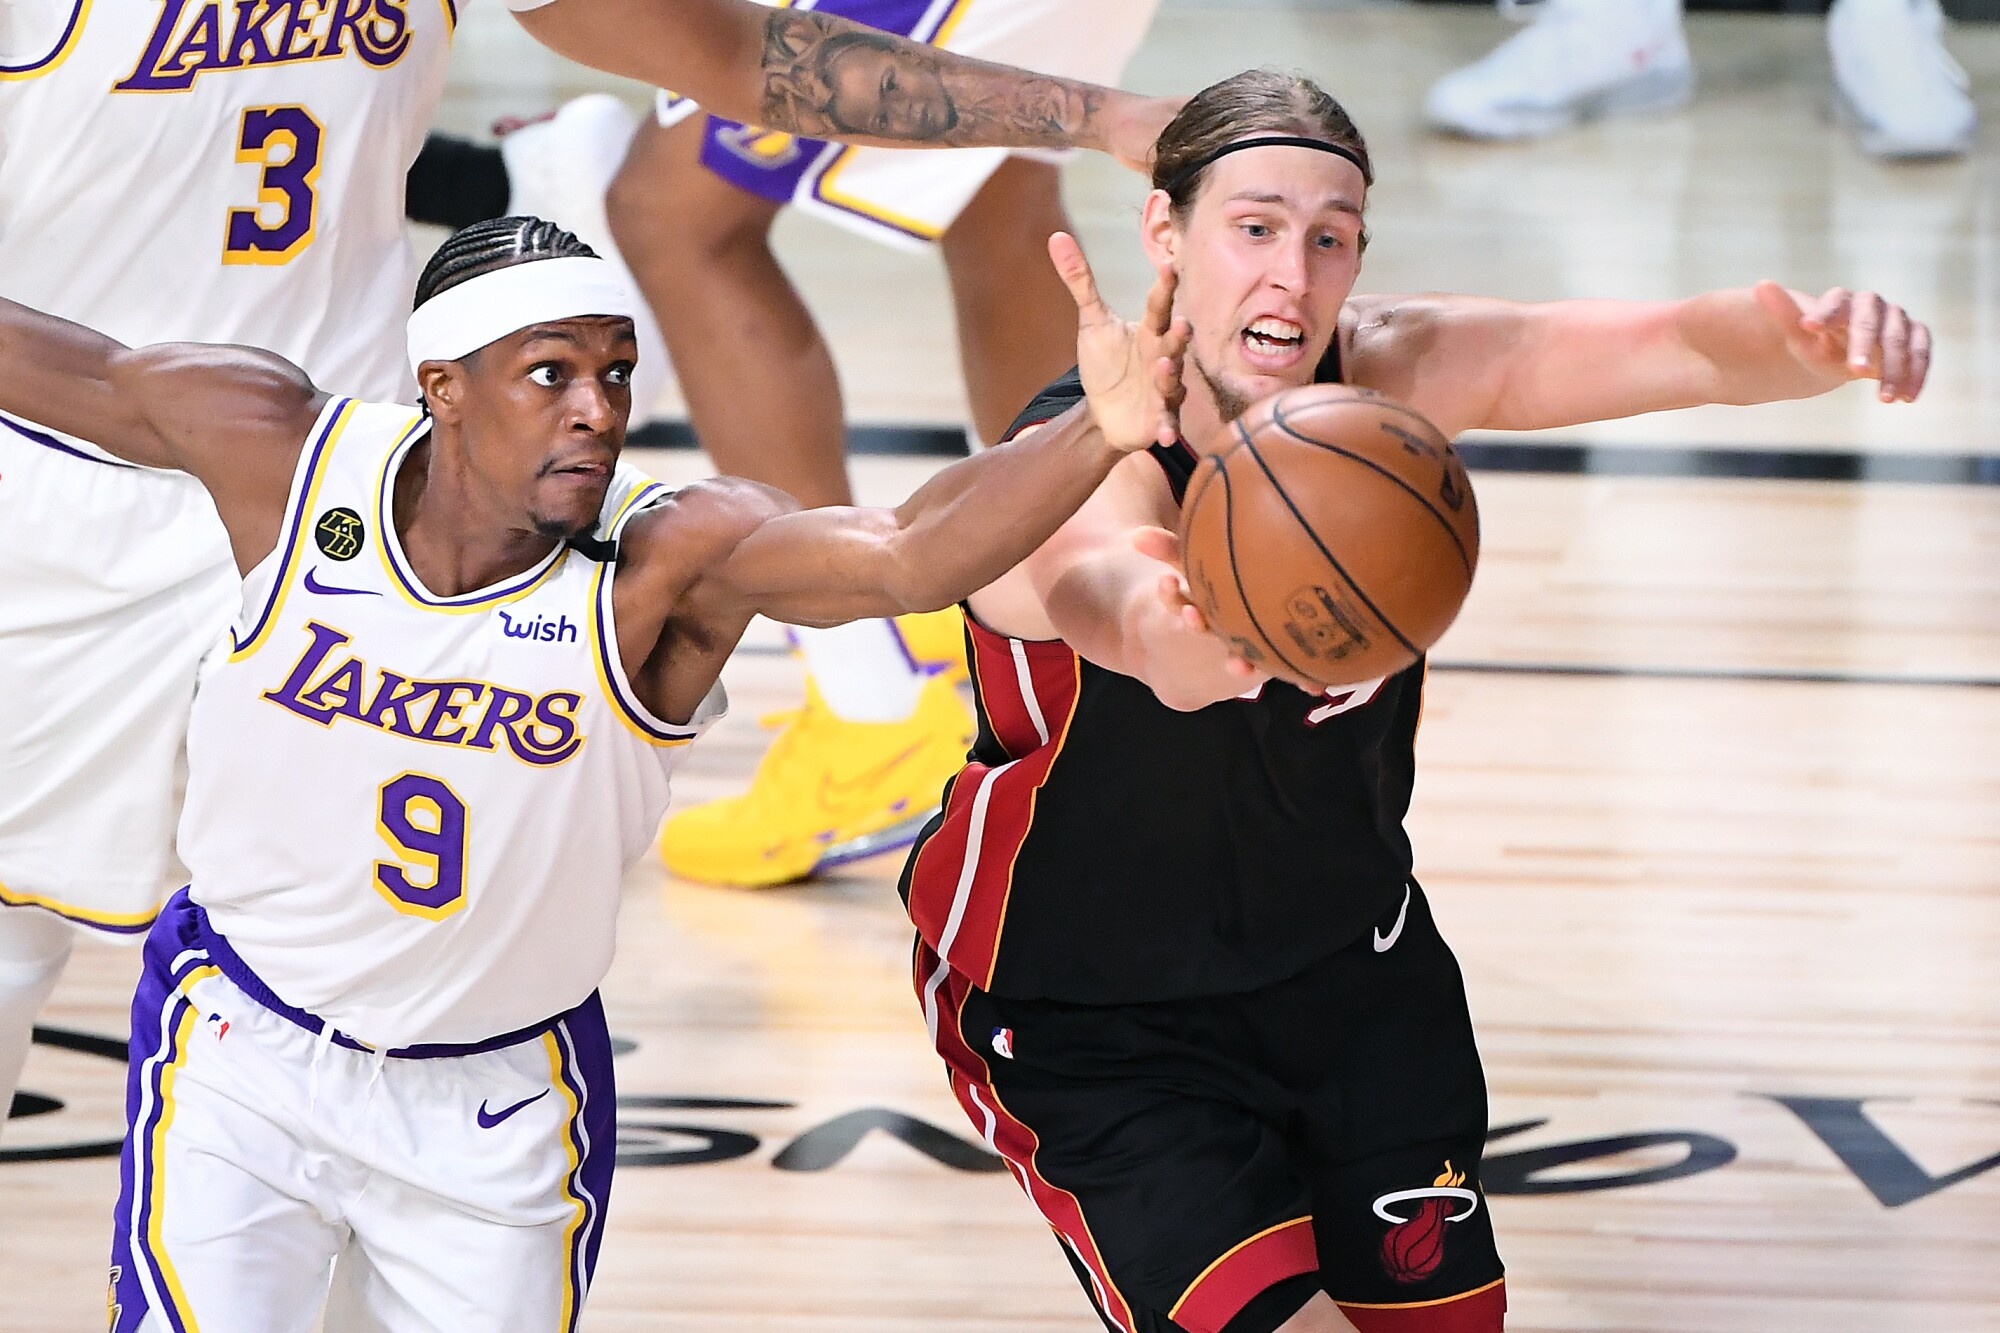 Lakers guard Rajon Rondo and Heat center Kelly Olynyk chase after a loose ball during Game 3 on Sunday night.